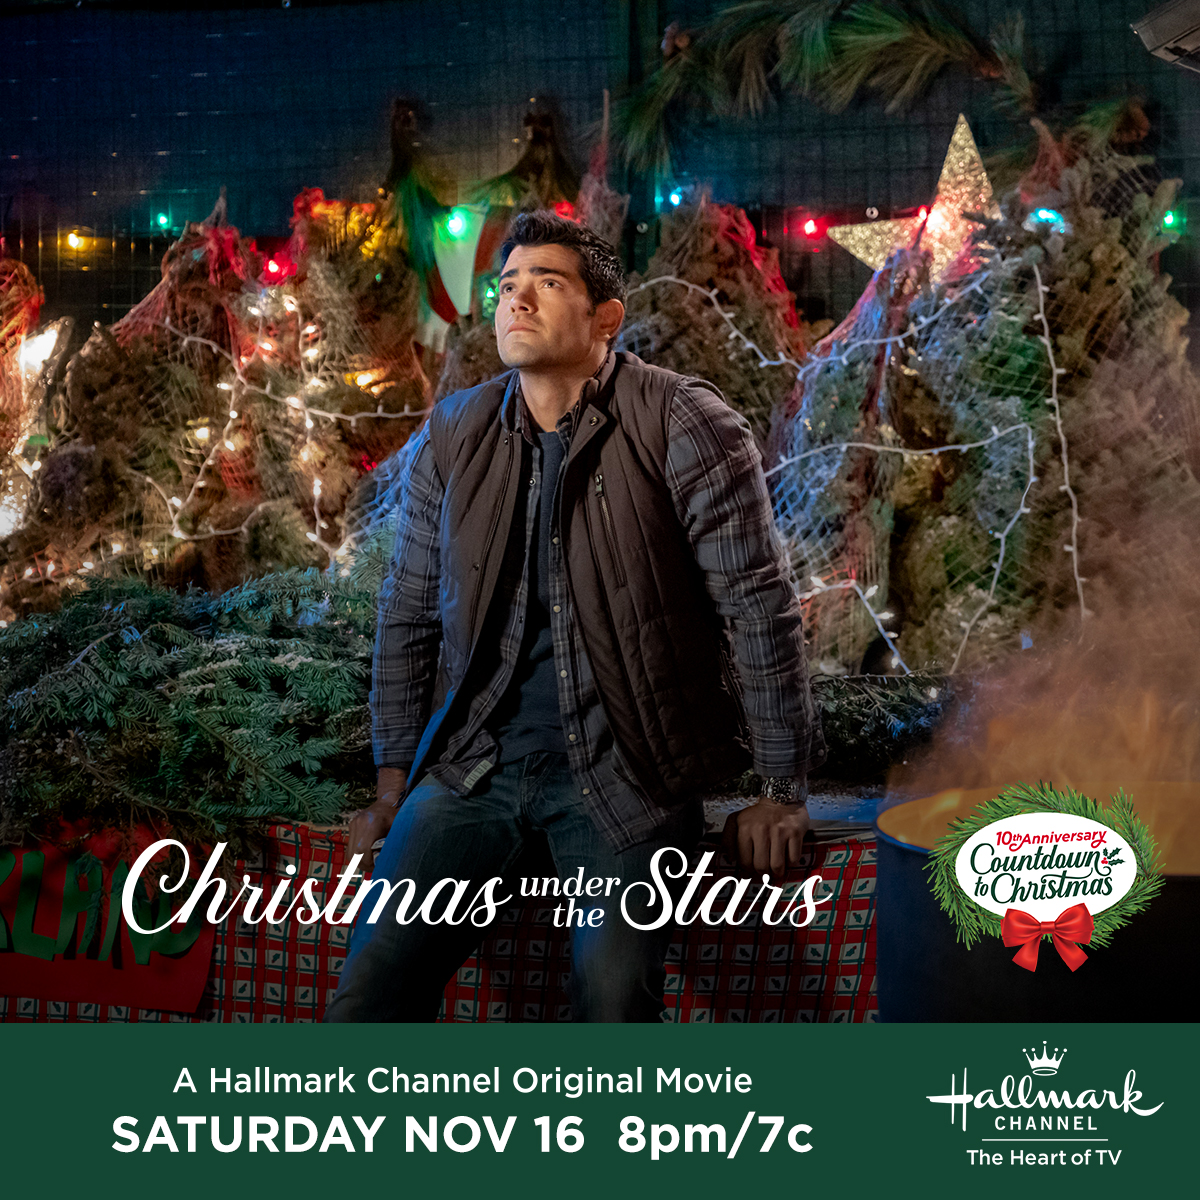 "Hallmark Channel's Premiere of ""Christmas Under the Stars"" on Saturday, Nov. 16th at 8pm/7c! #CountdowntoChristmas"